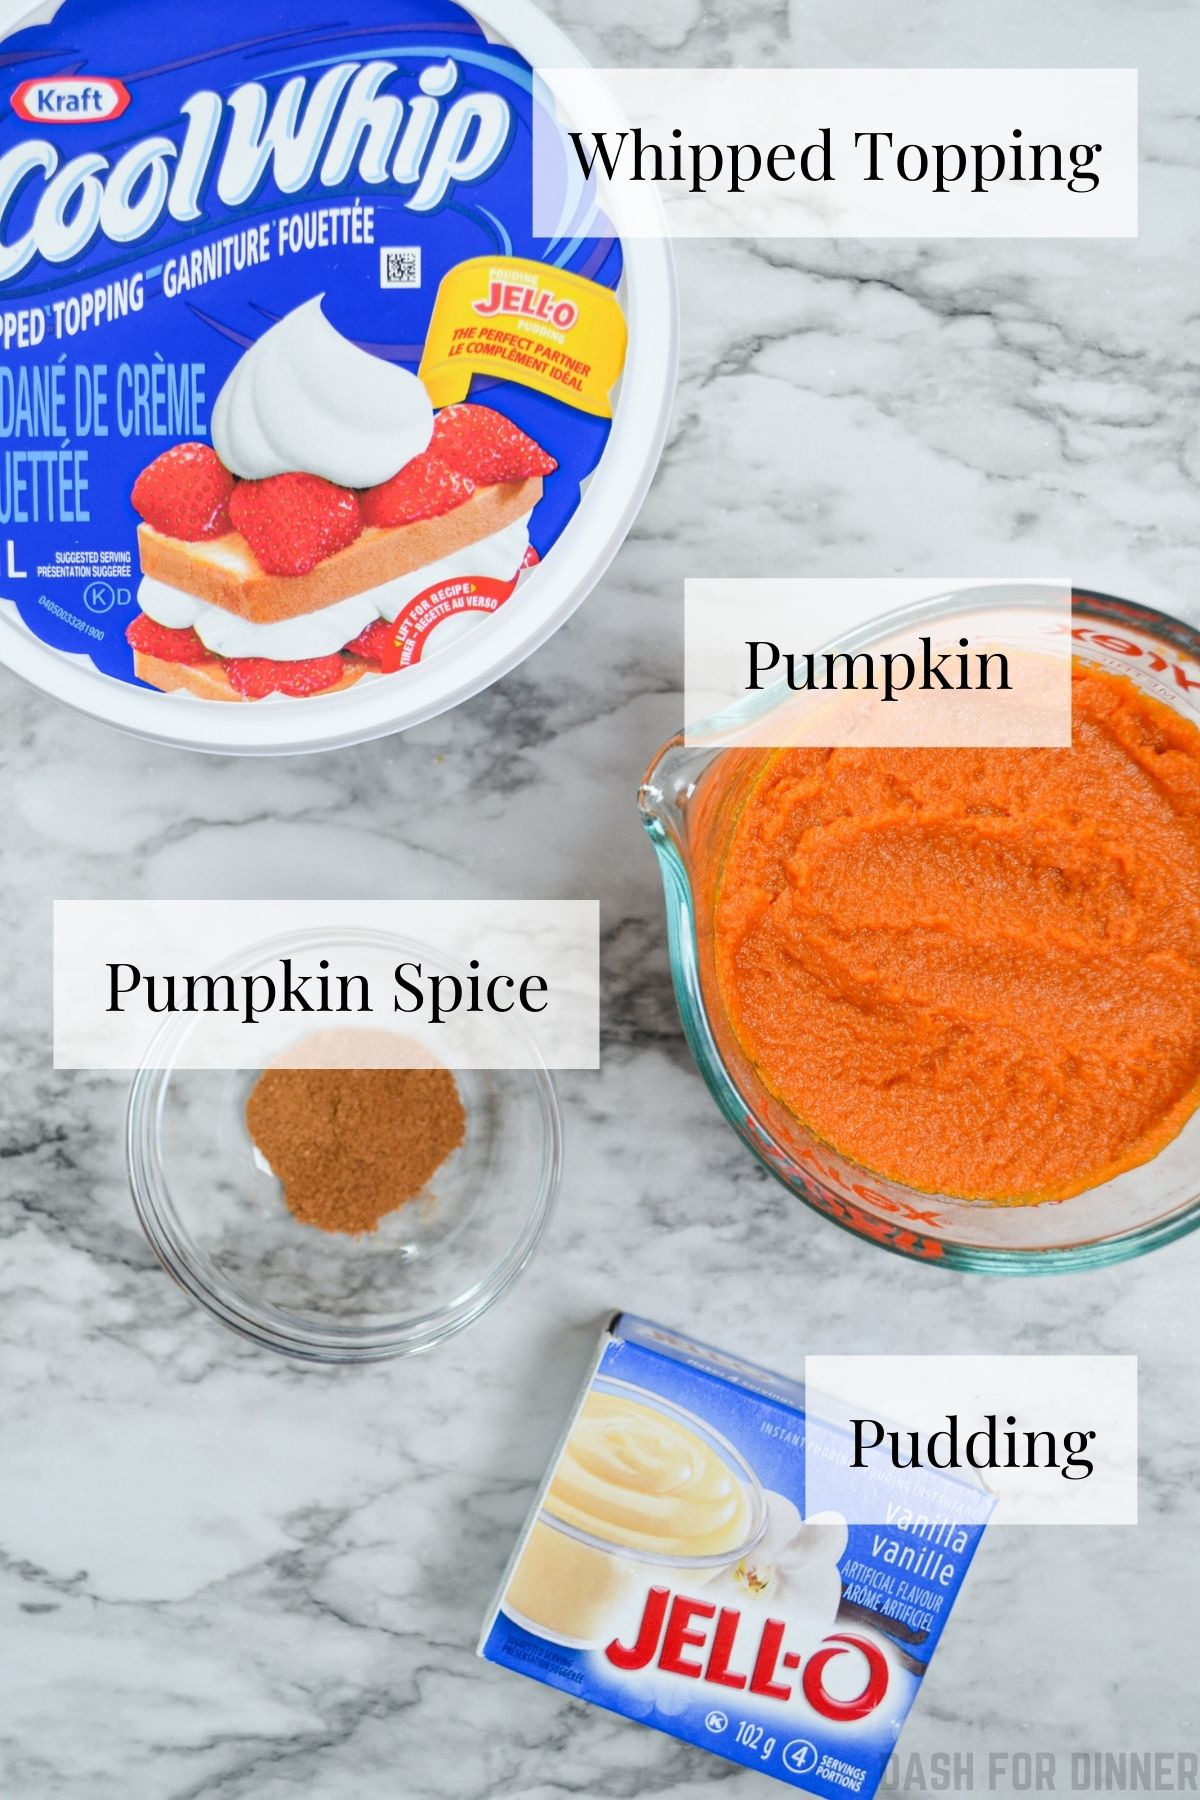 The four ingredients you need to make pumpkin fluff: cool whip, pumpkin, vanilla pudding mix, and pumpkin spice.